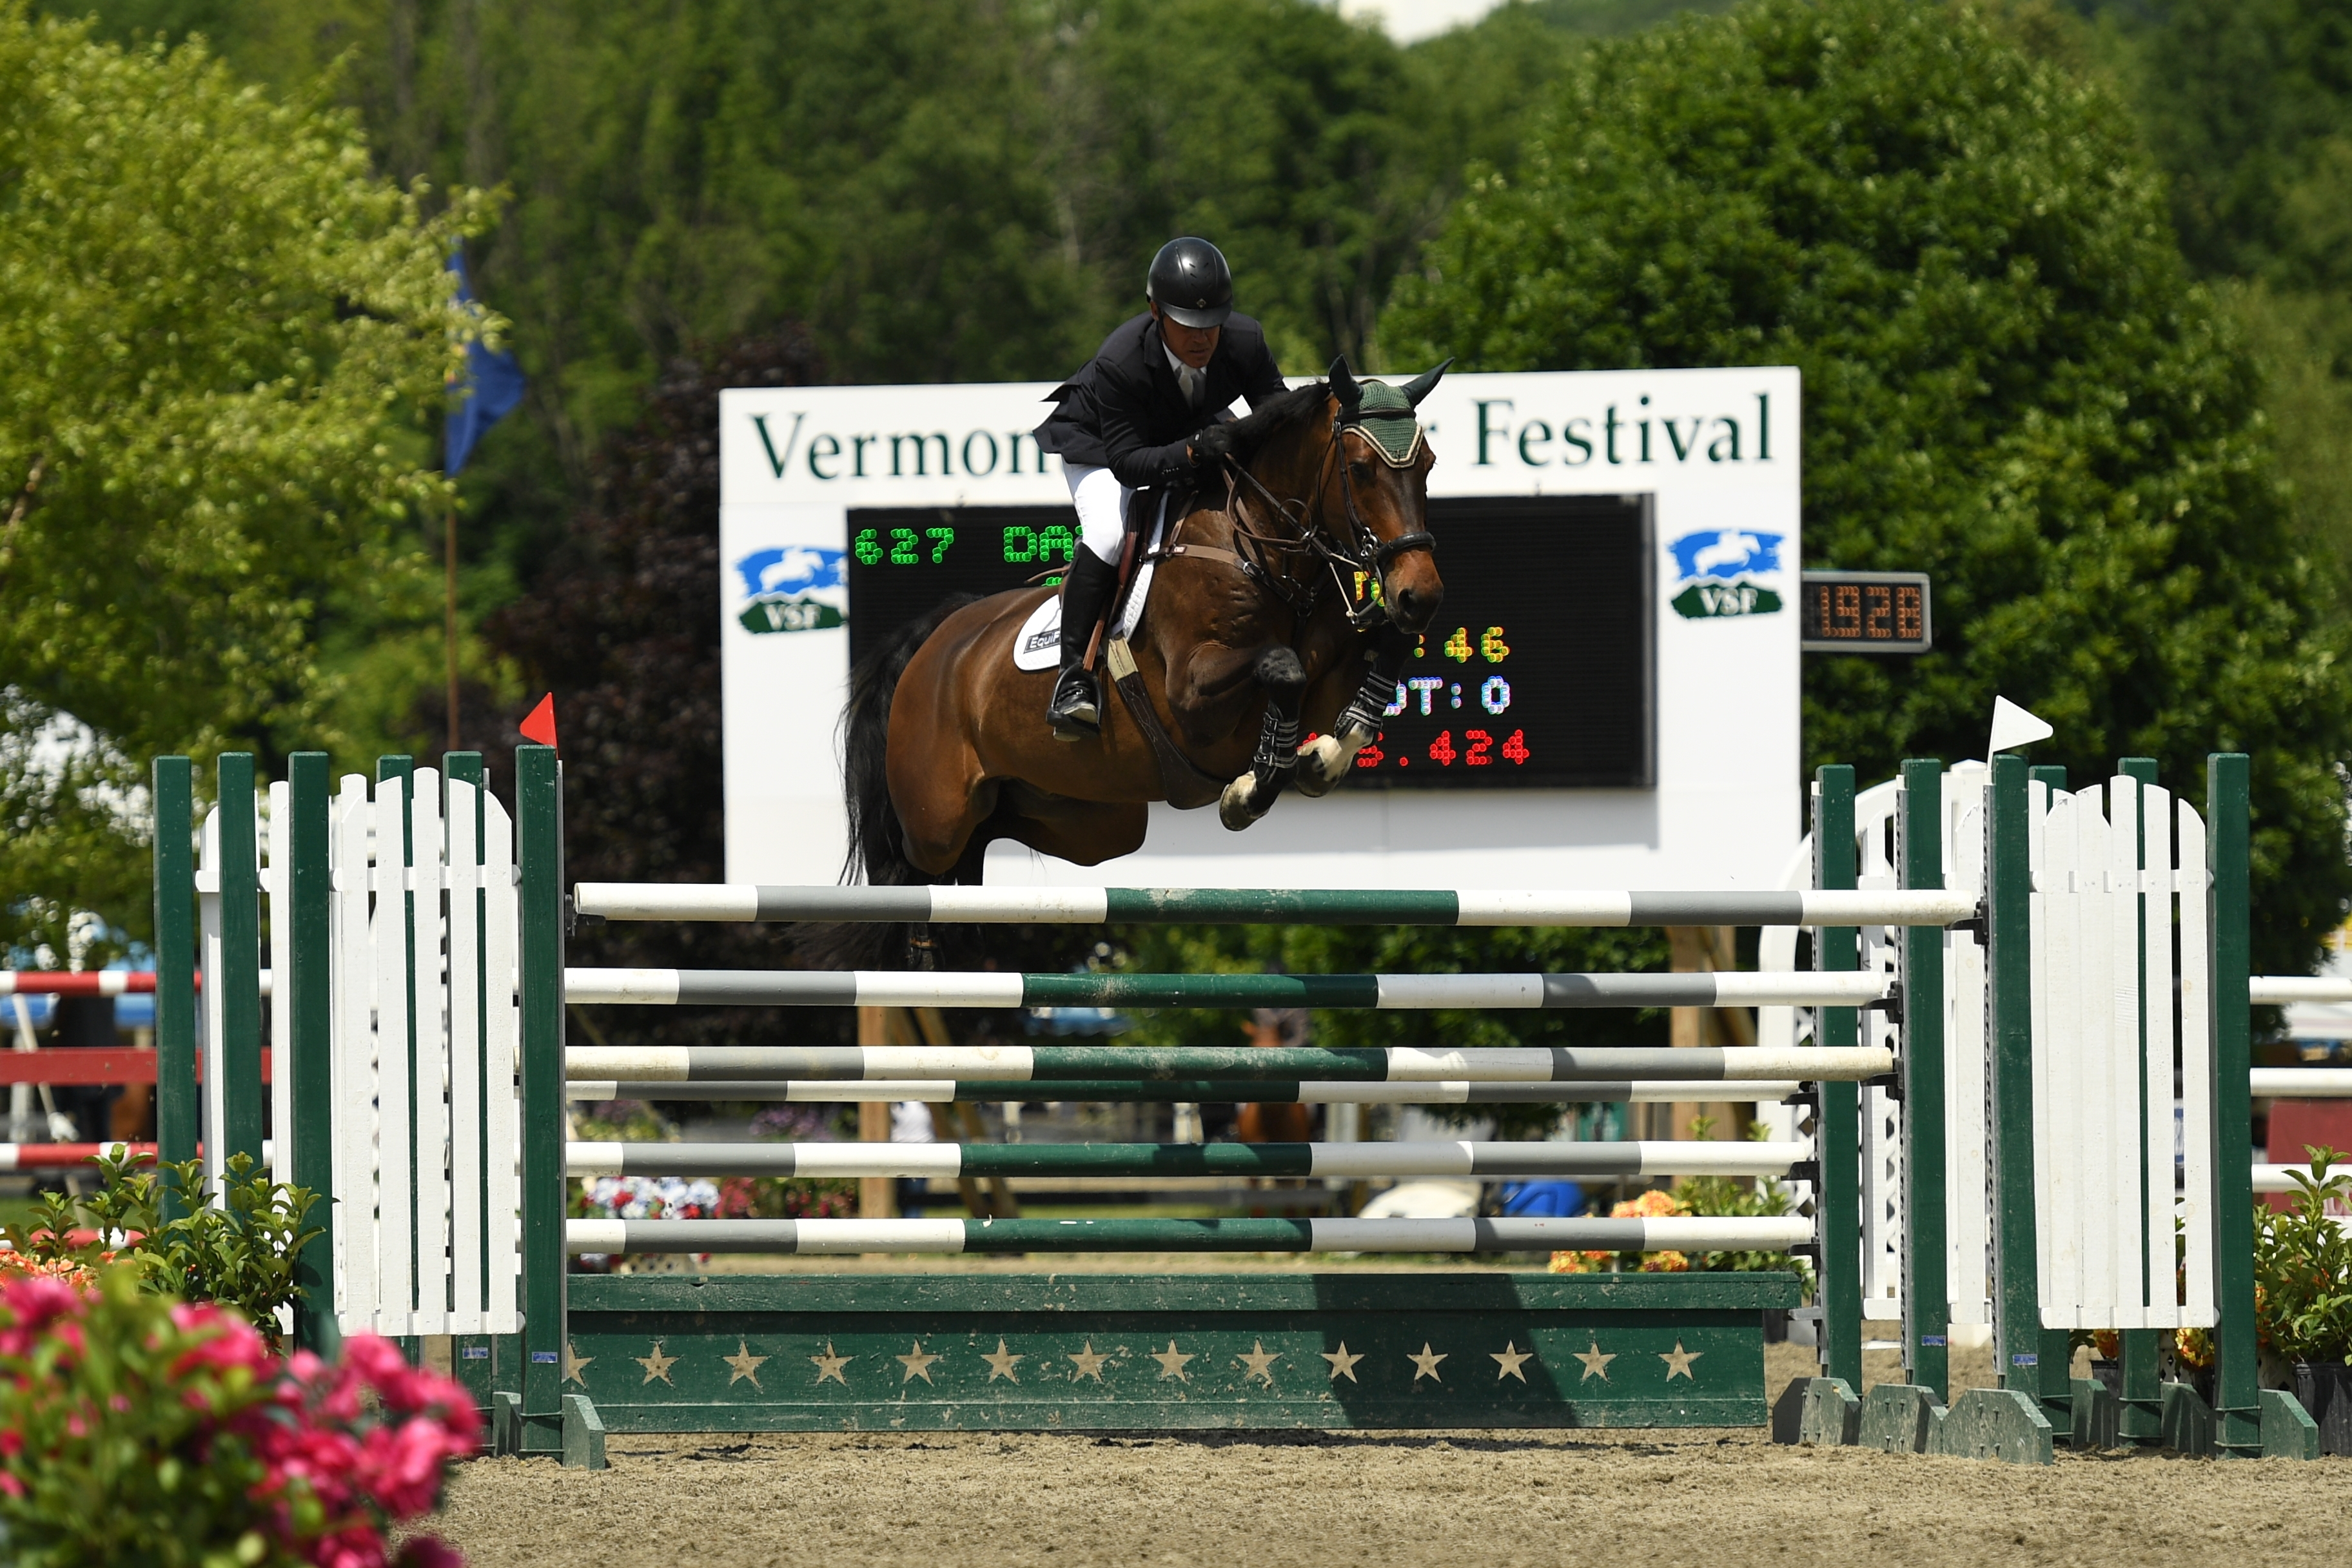 Jimmy Torano, pictured riding Day Dream, topped the $10,000 Sir Ruly, Inc. Open Jumper Awards at the 2016 Vermont Summer Festival.<br><b>Photo by <a href='http://www.andrewryback.com/' target='_blank'>Andrew Ryback Photography</a></b>